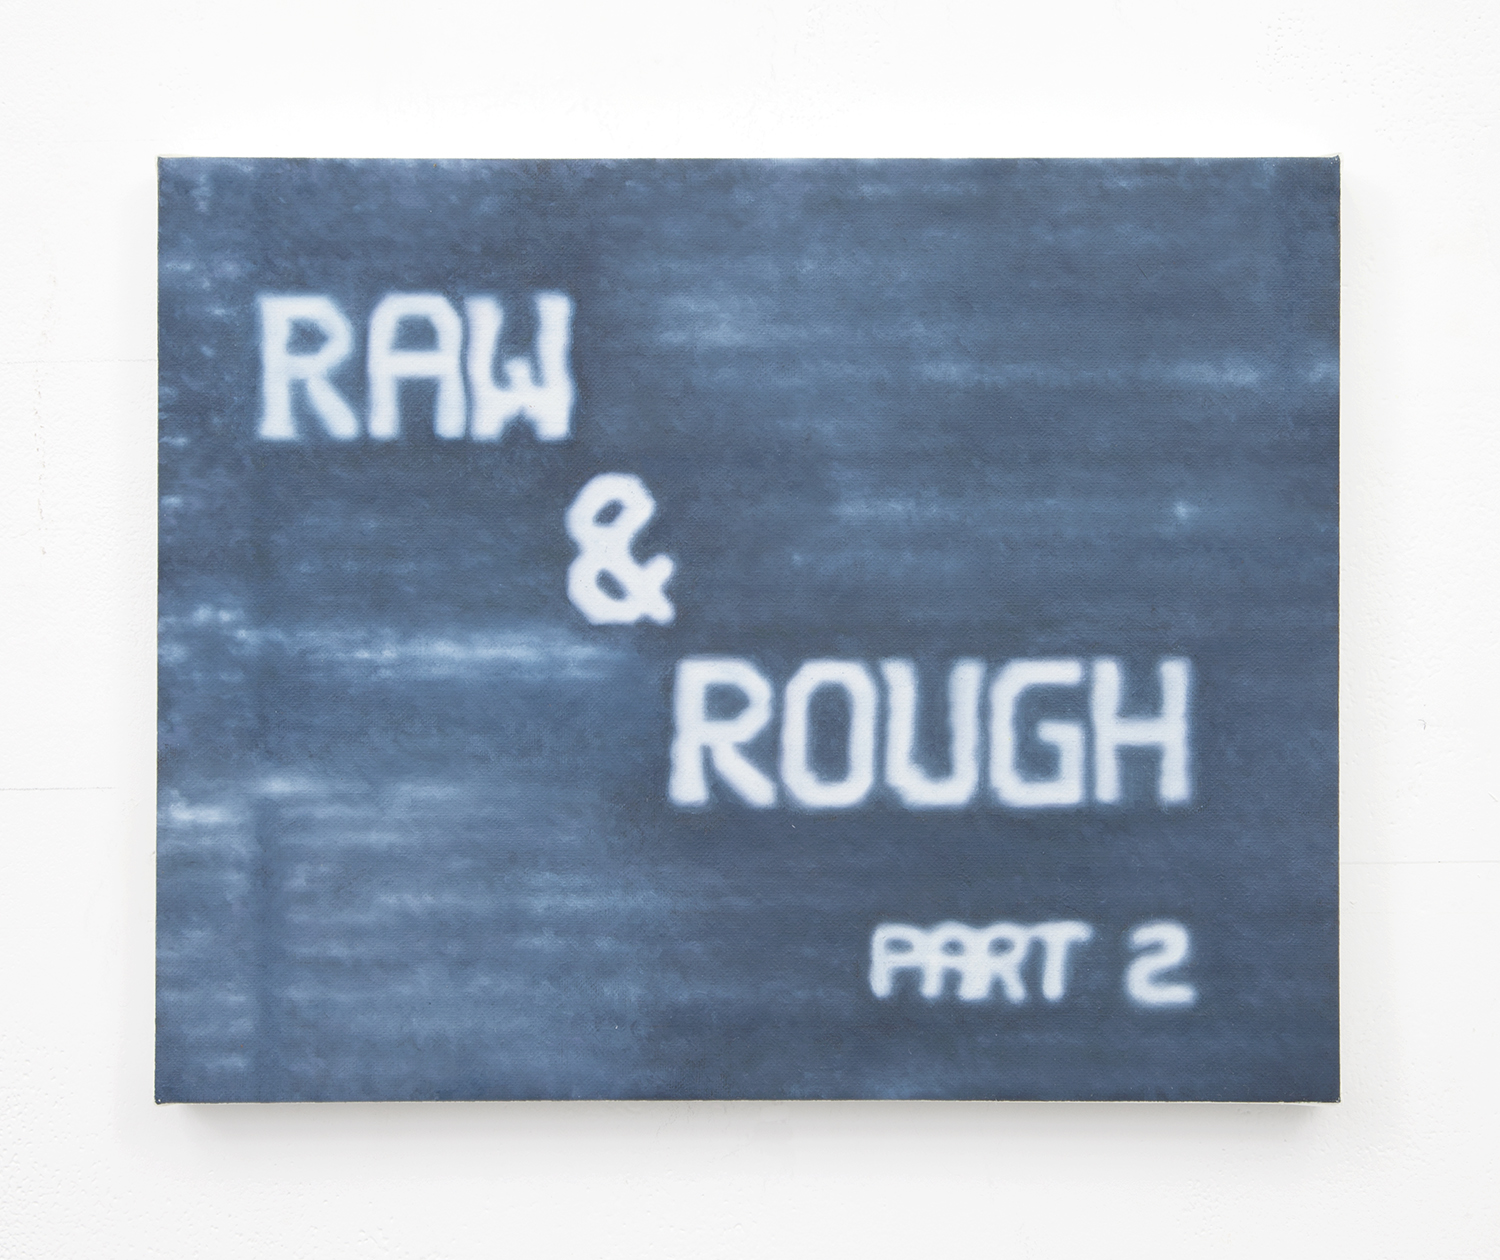 Raw & Rough Part 2 , 2015 Oil on linen 11 x 14 inches